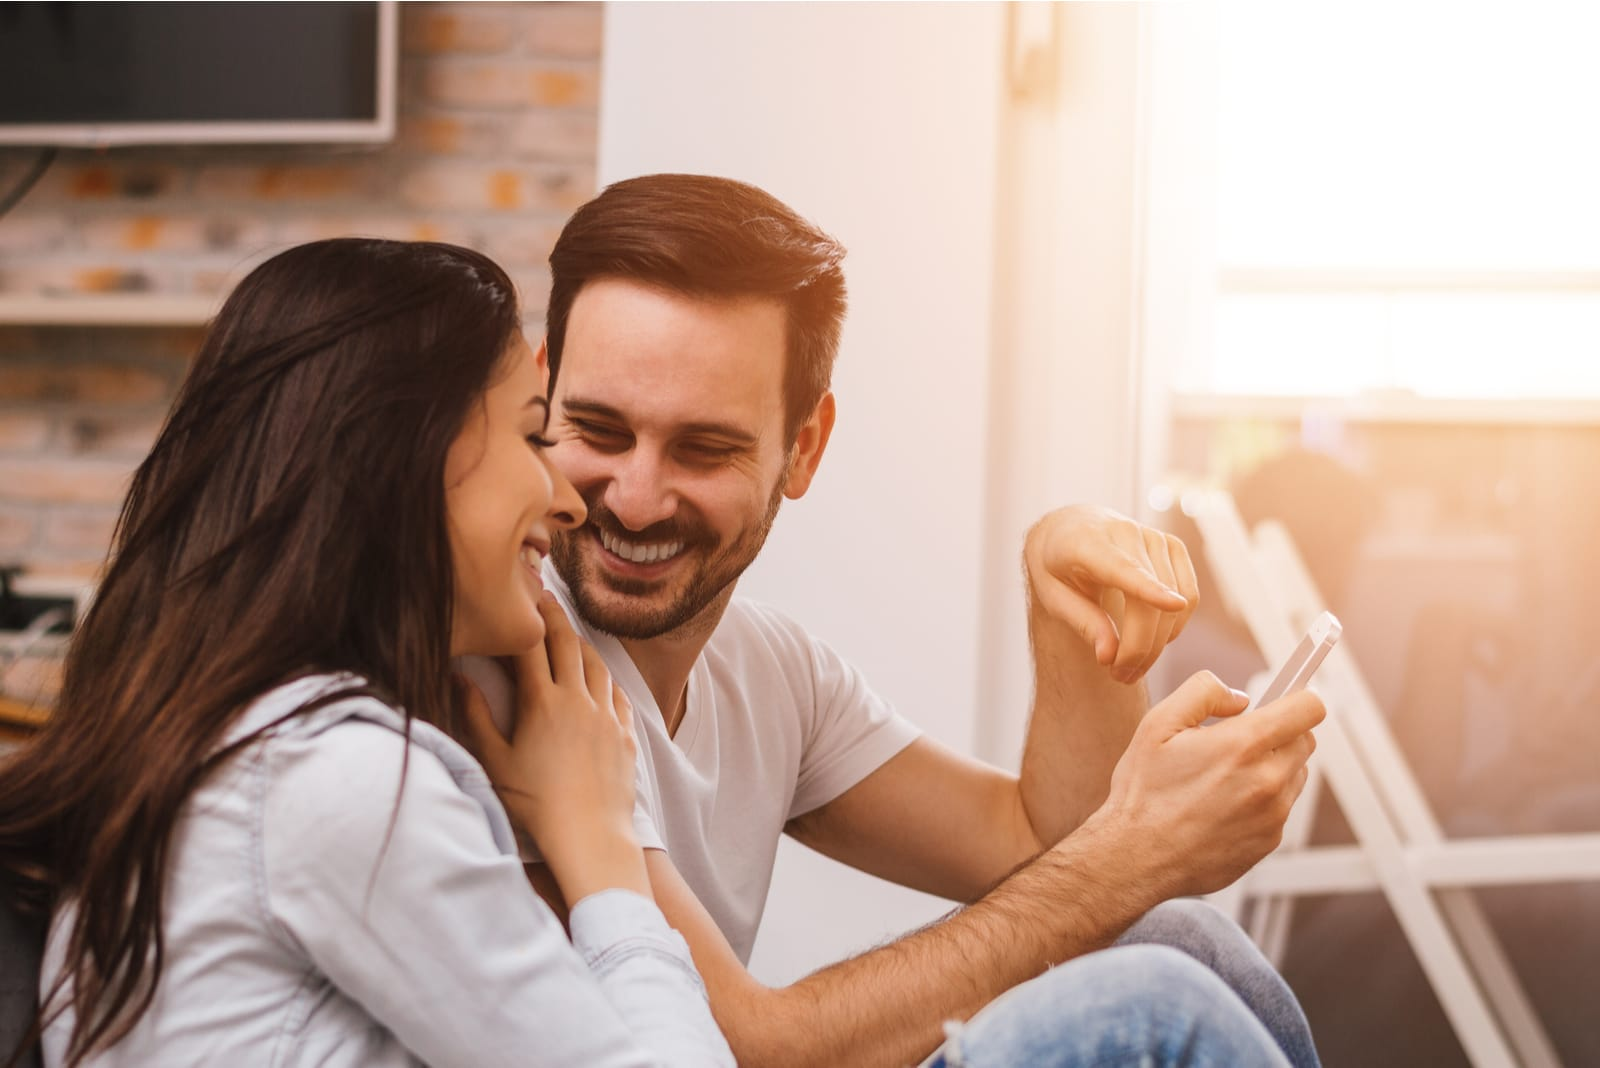 smiling man talking to woman and showing the phone